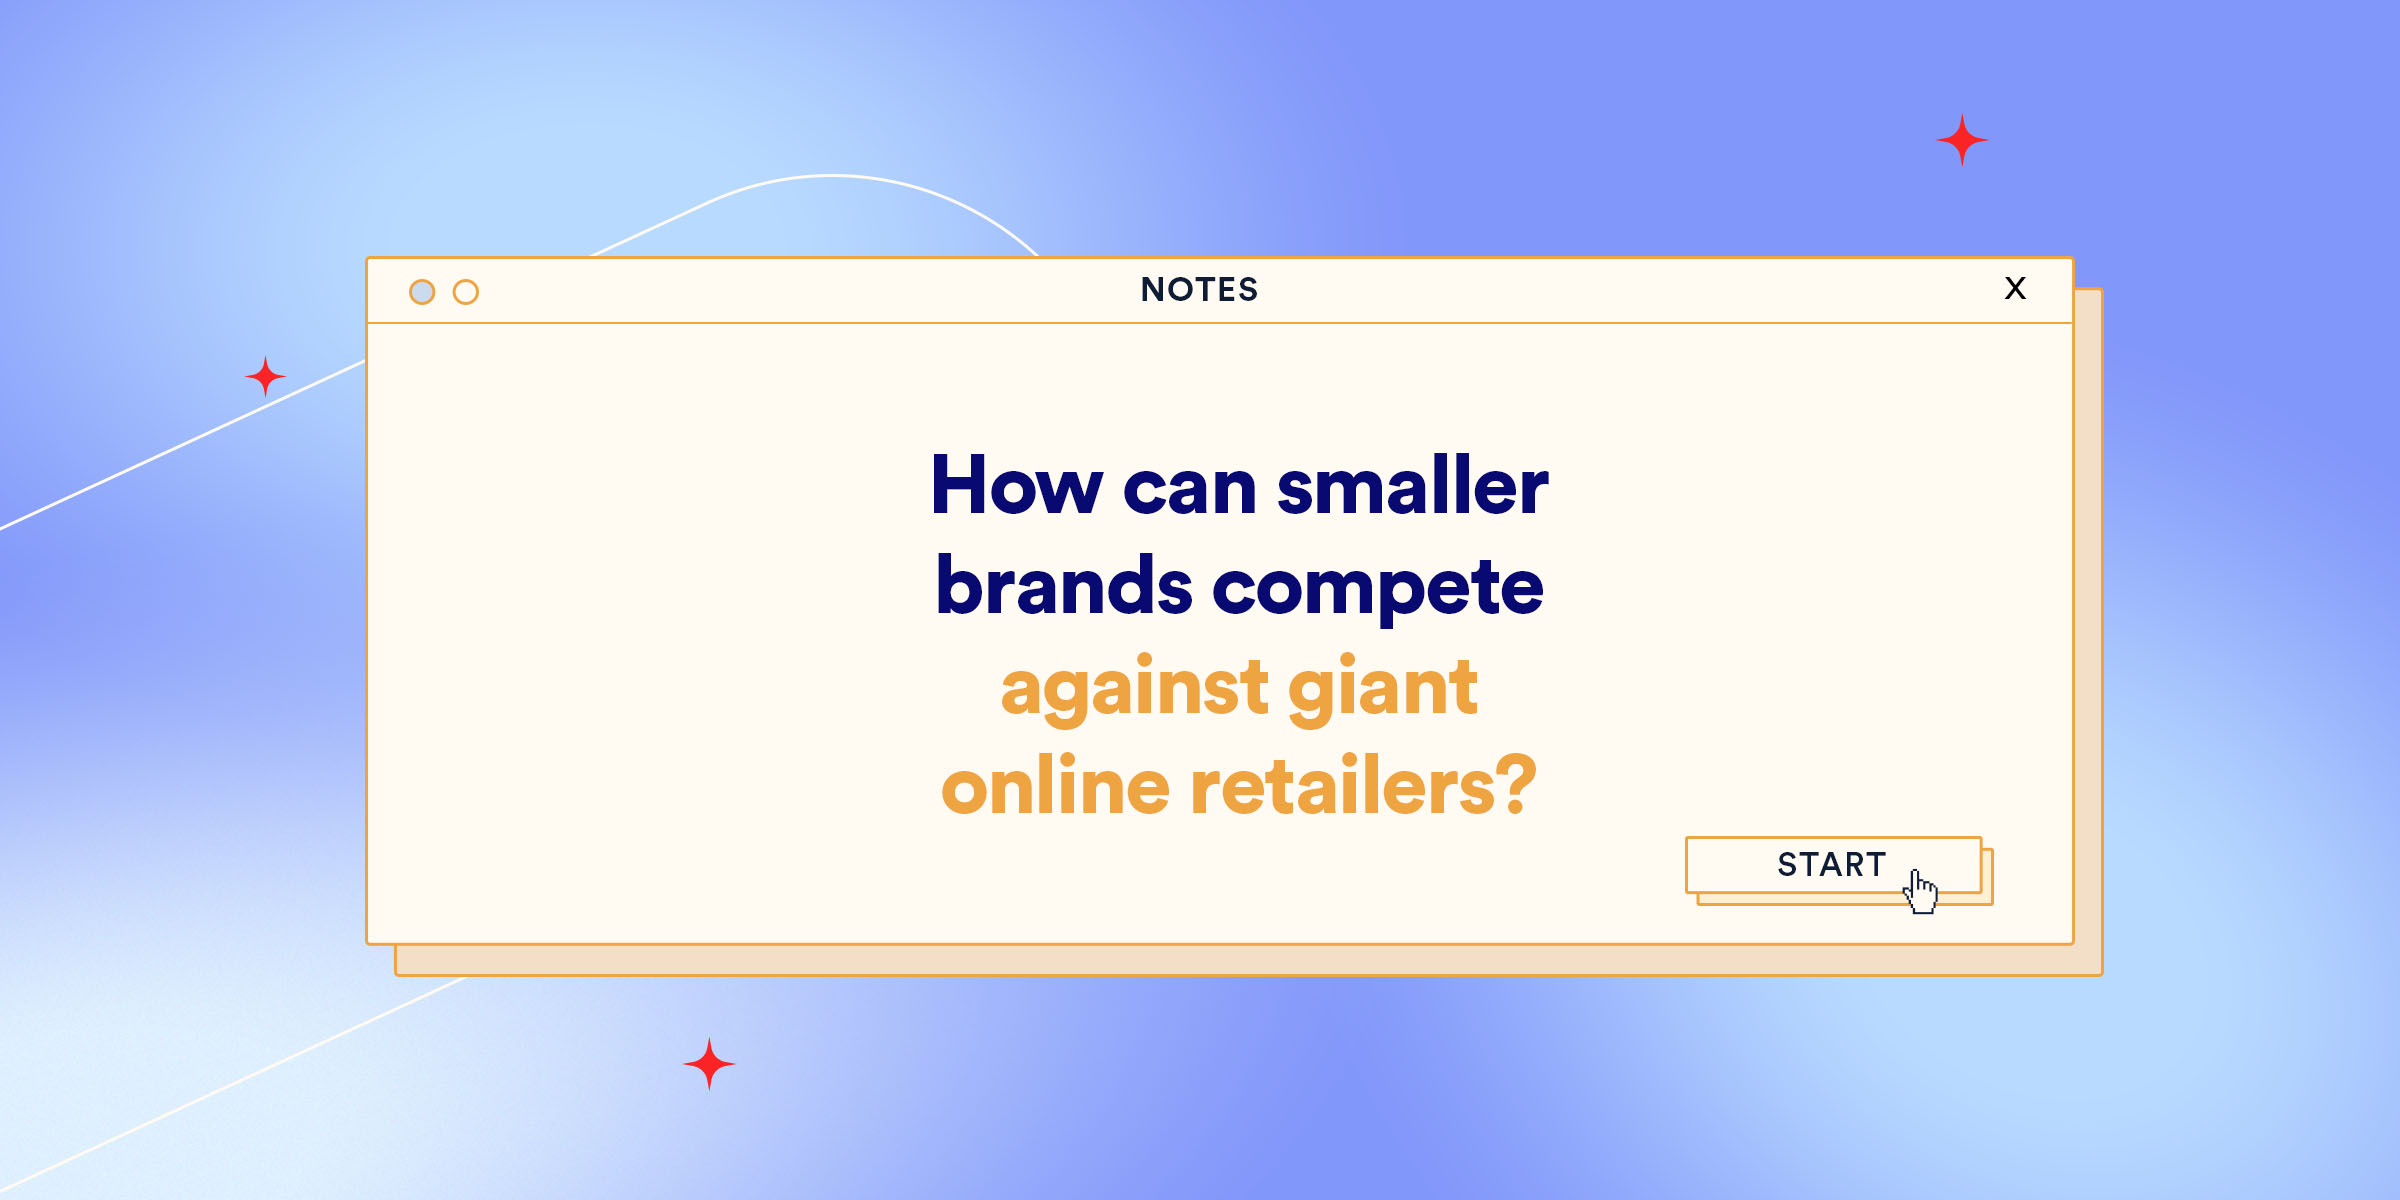 With shoppers around the globe enjoying the fast delivery and product consistency of retail giants like Amazon, Alibaba, eBay and Walmart, how can smaller stores stay competitive?